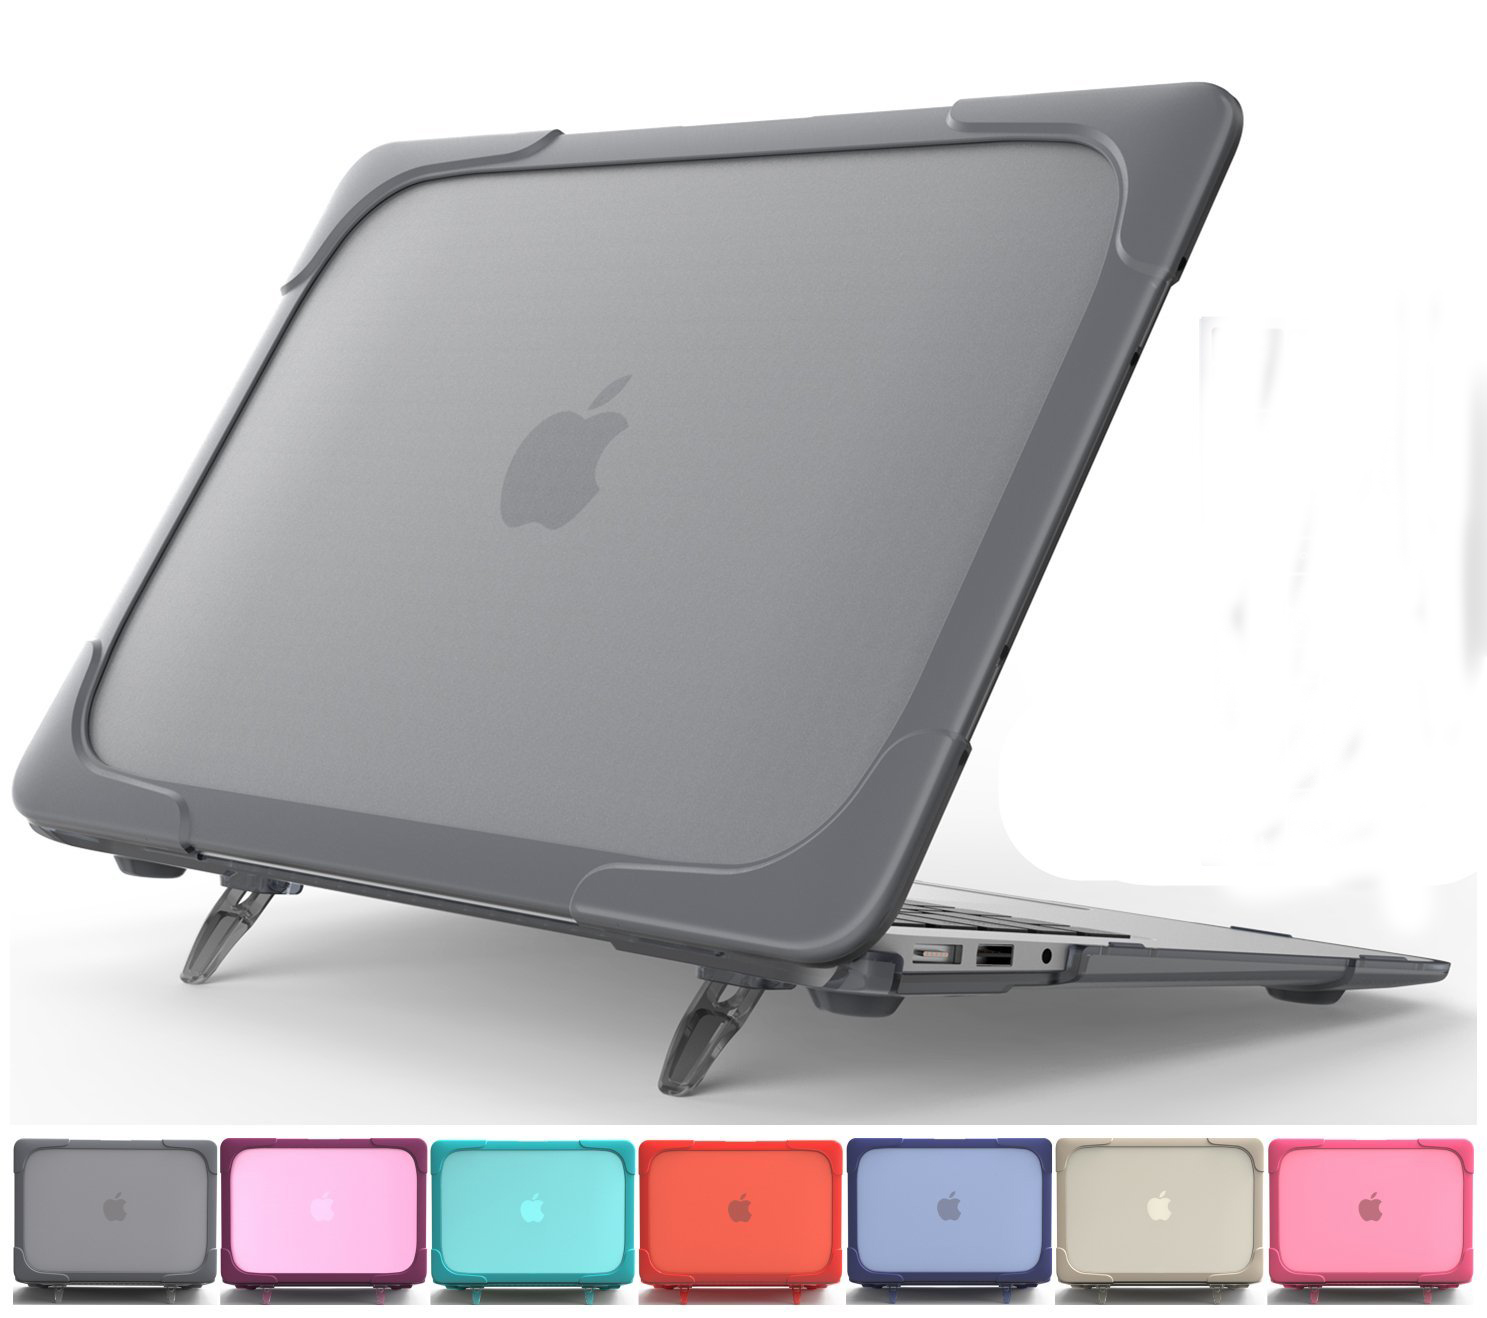 Shockproof Hard Plastic Case for Macbook Air 13, Protective Shell Case for with Foldable Stand for Mackbook Air 11 13 12 Case